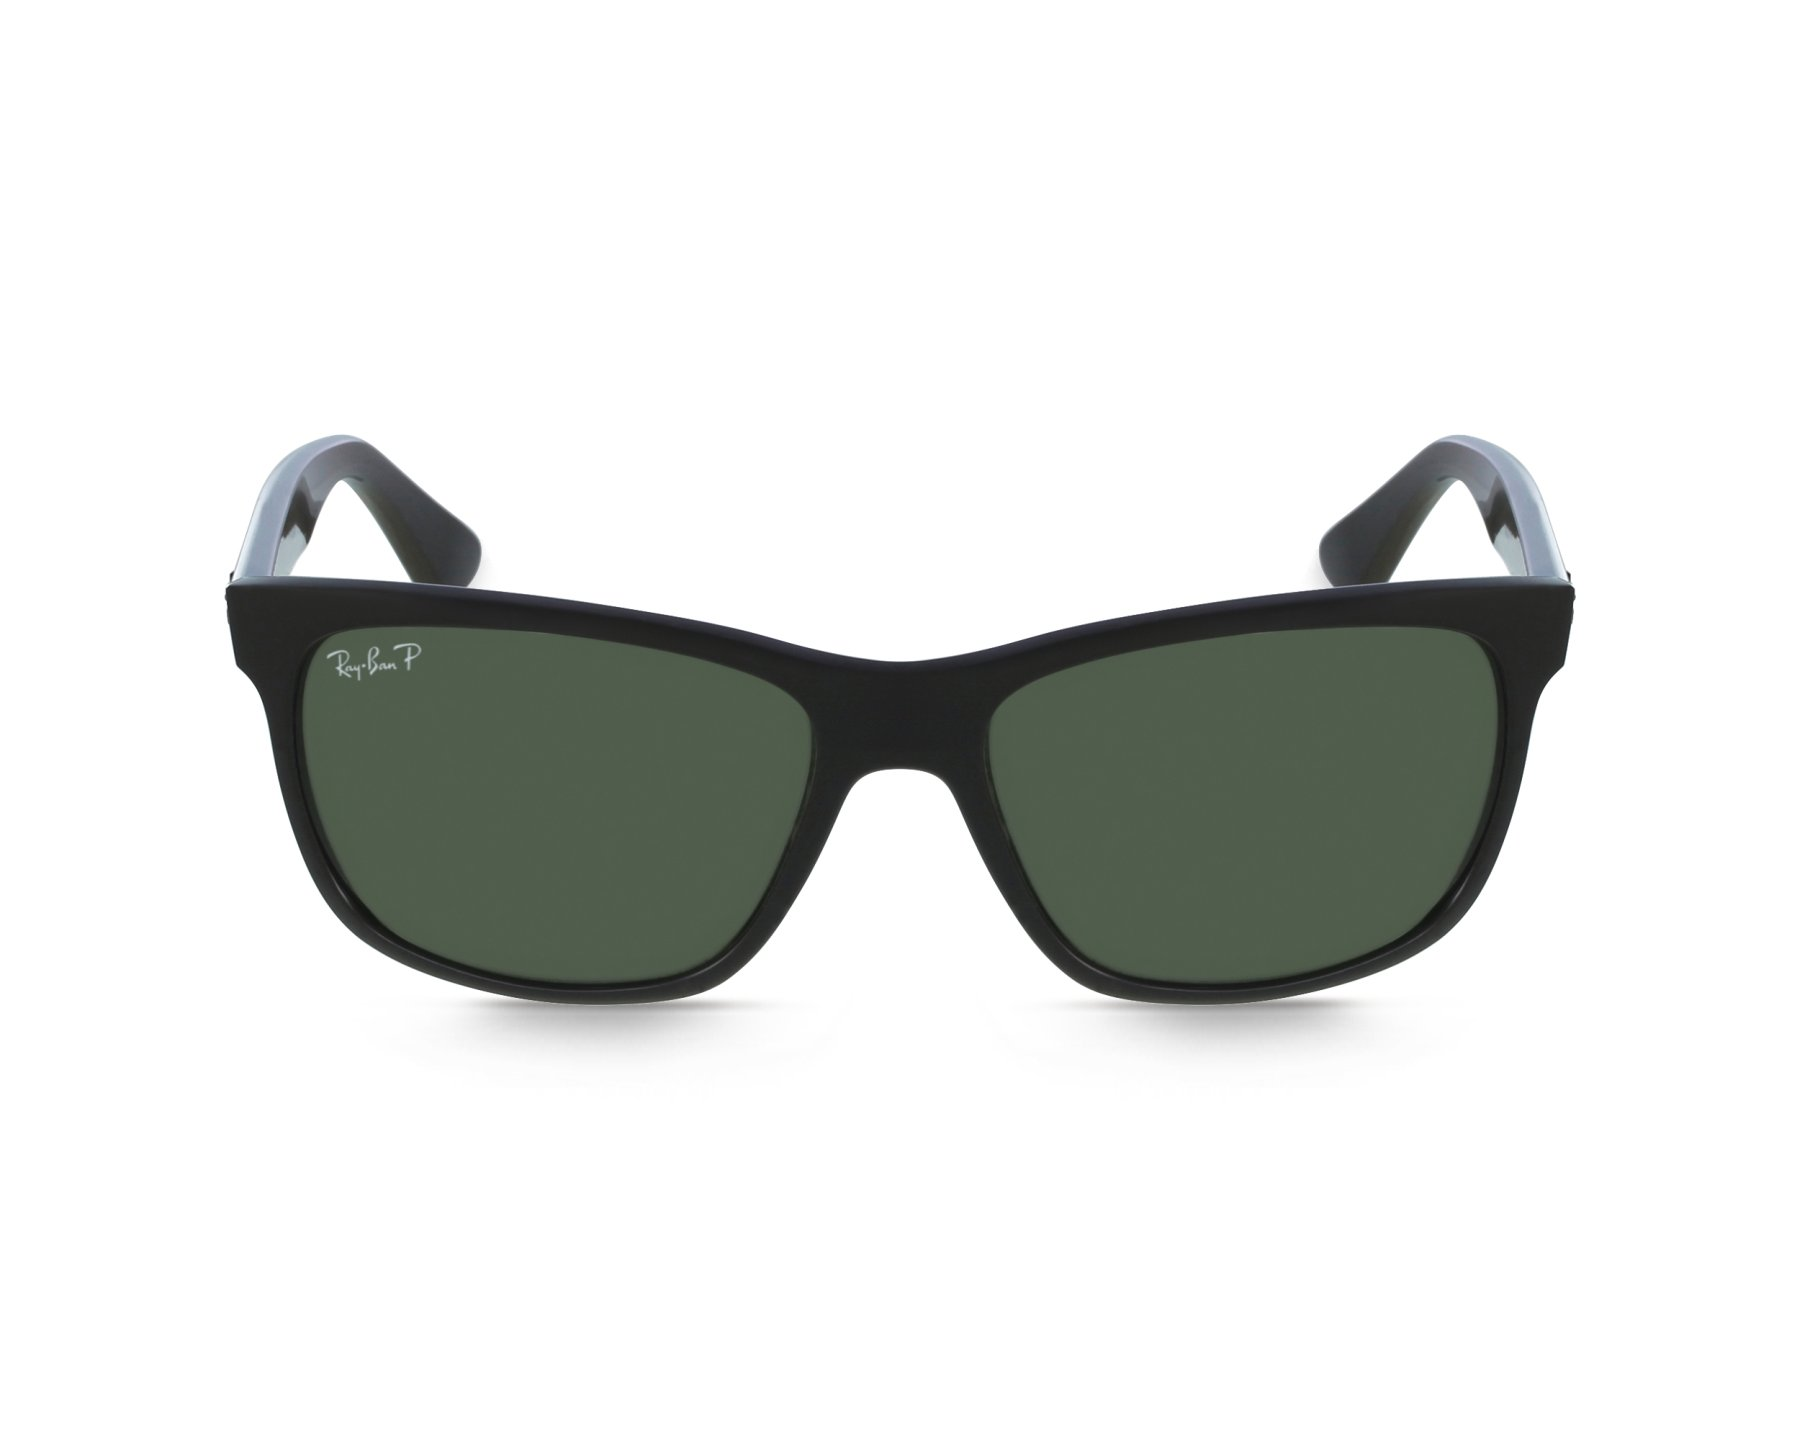 aec8d44949 ... official store sunglasses ray ban rb 4181 601 9a 57 17 black profile  view 567e6 27b5a